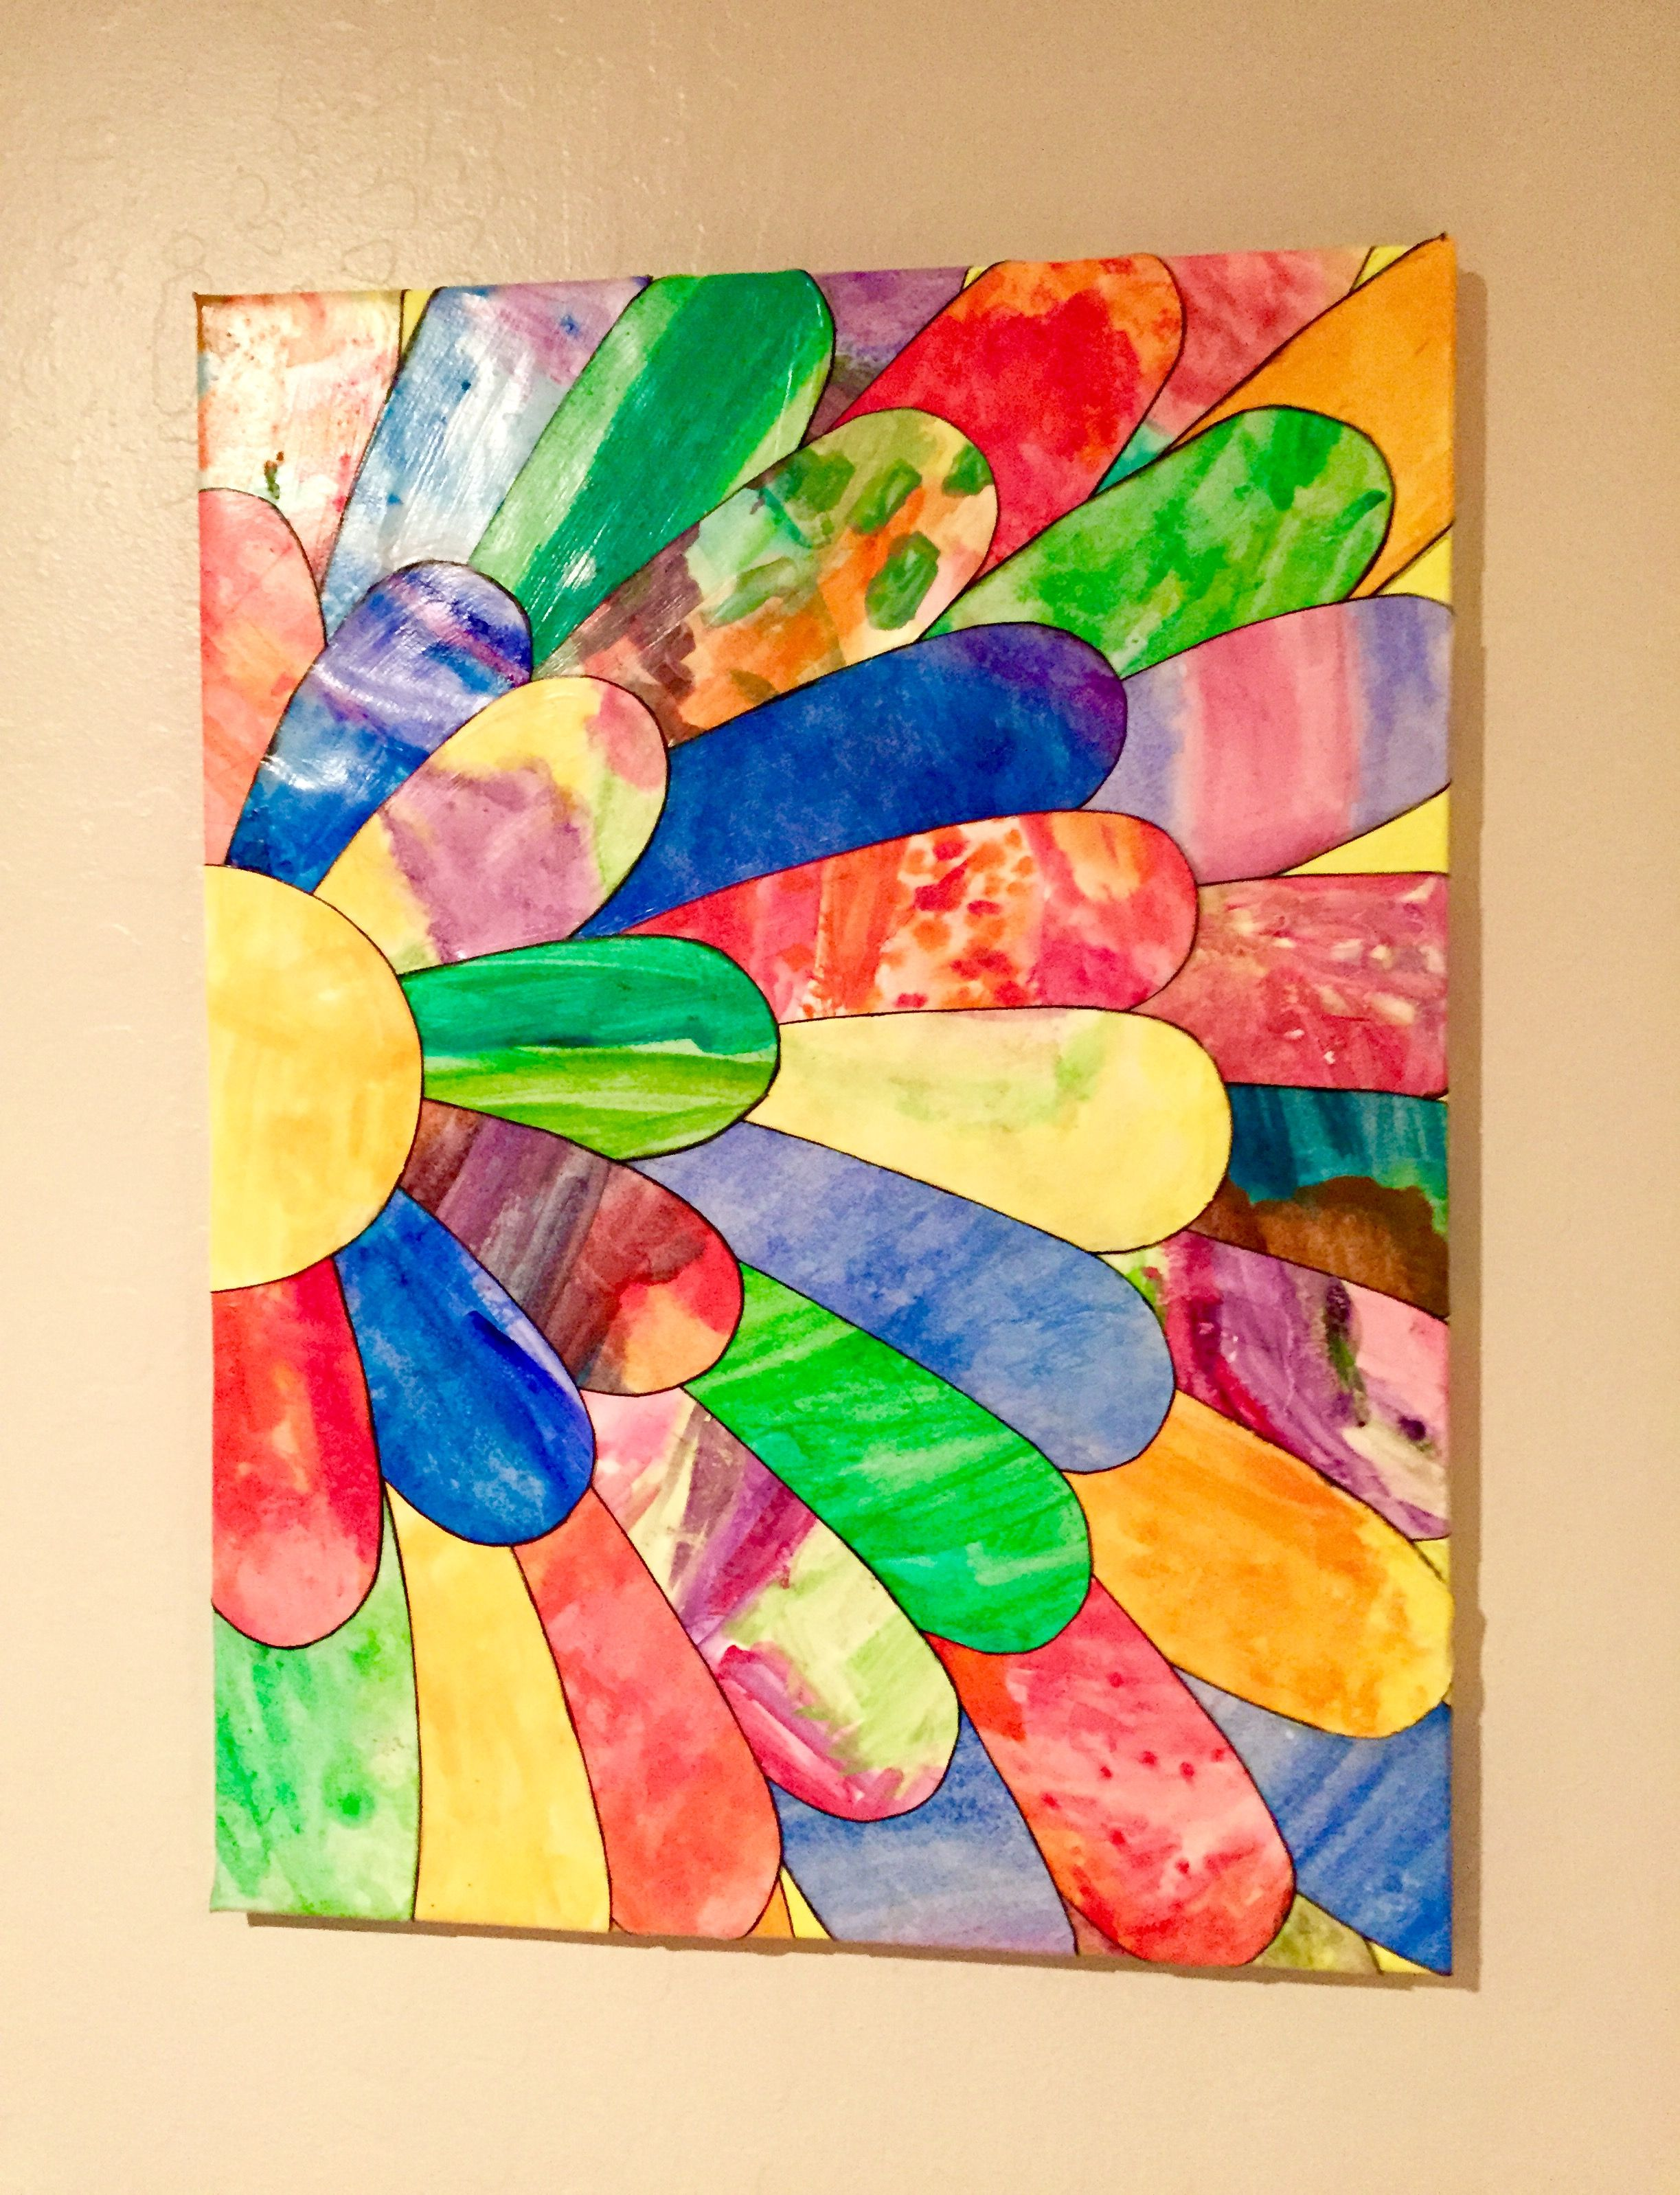 2015. Watercolor art cut into petals and decoupaged on to canvas.